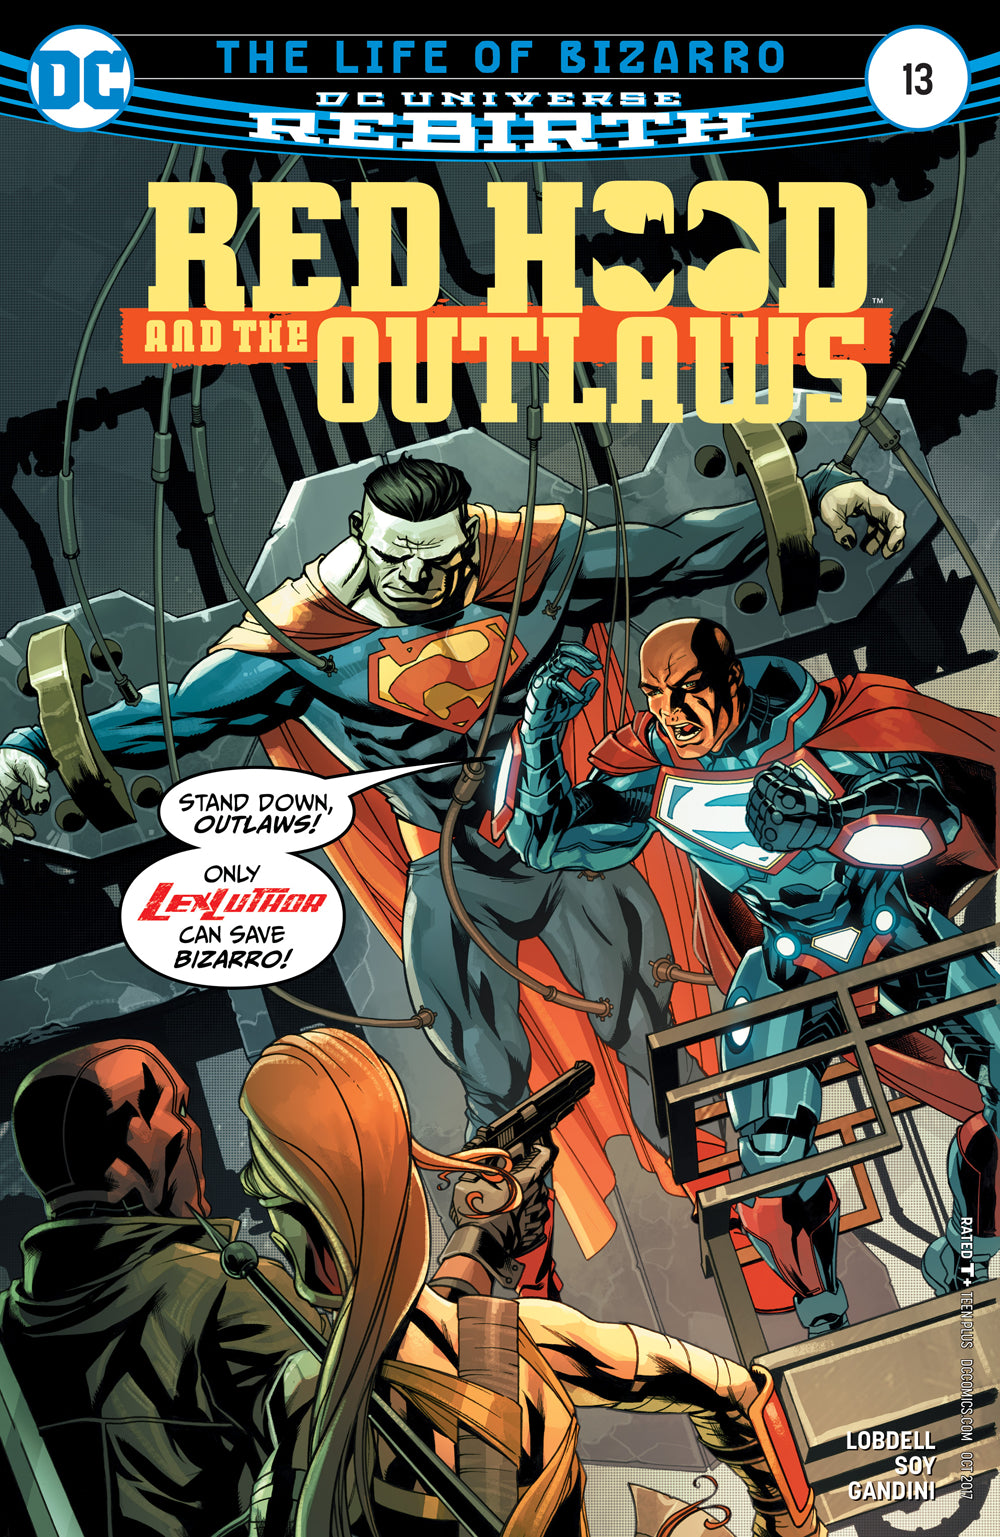 RED HOOD AND THE OUTLAWS #13